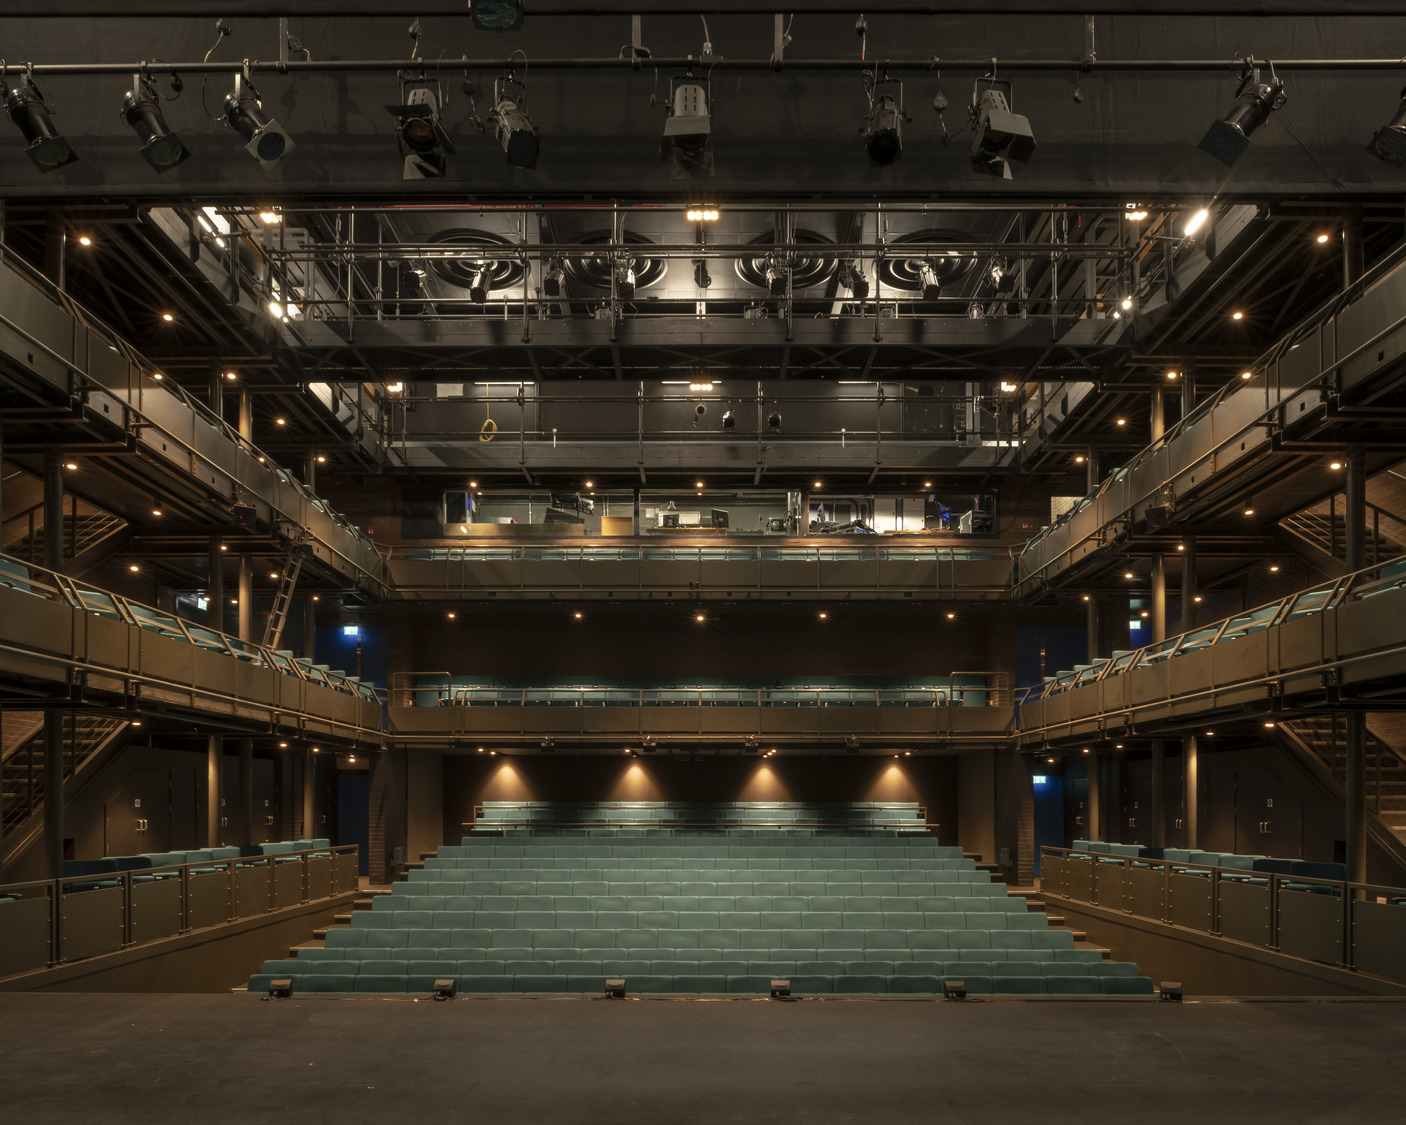 The Courtyard Theatre was completely stripped out to allow for installation of a new low-energy air handling unit with integrated heat-pump cooling, new house lighting and theatre technical electrics.